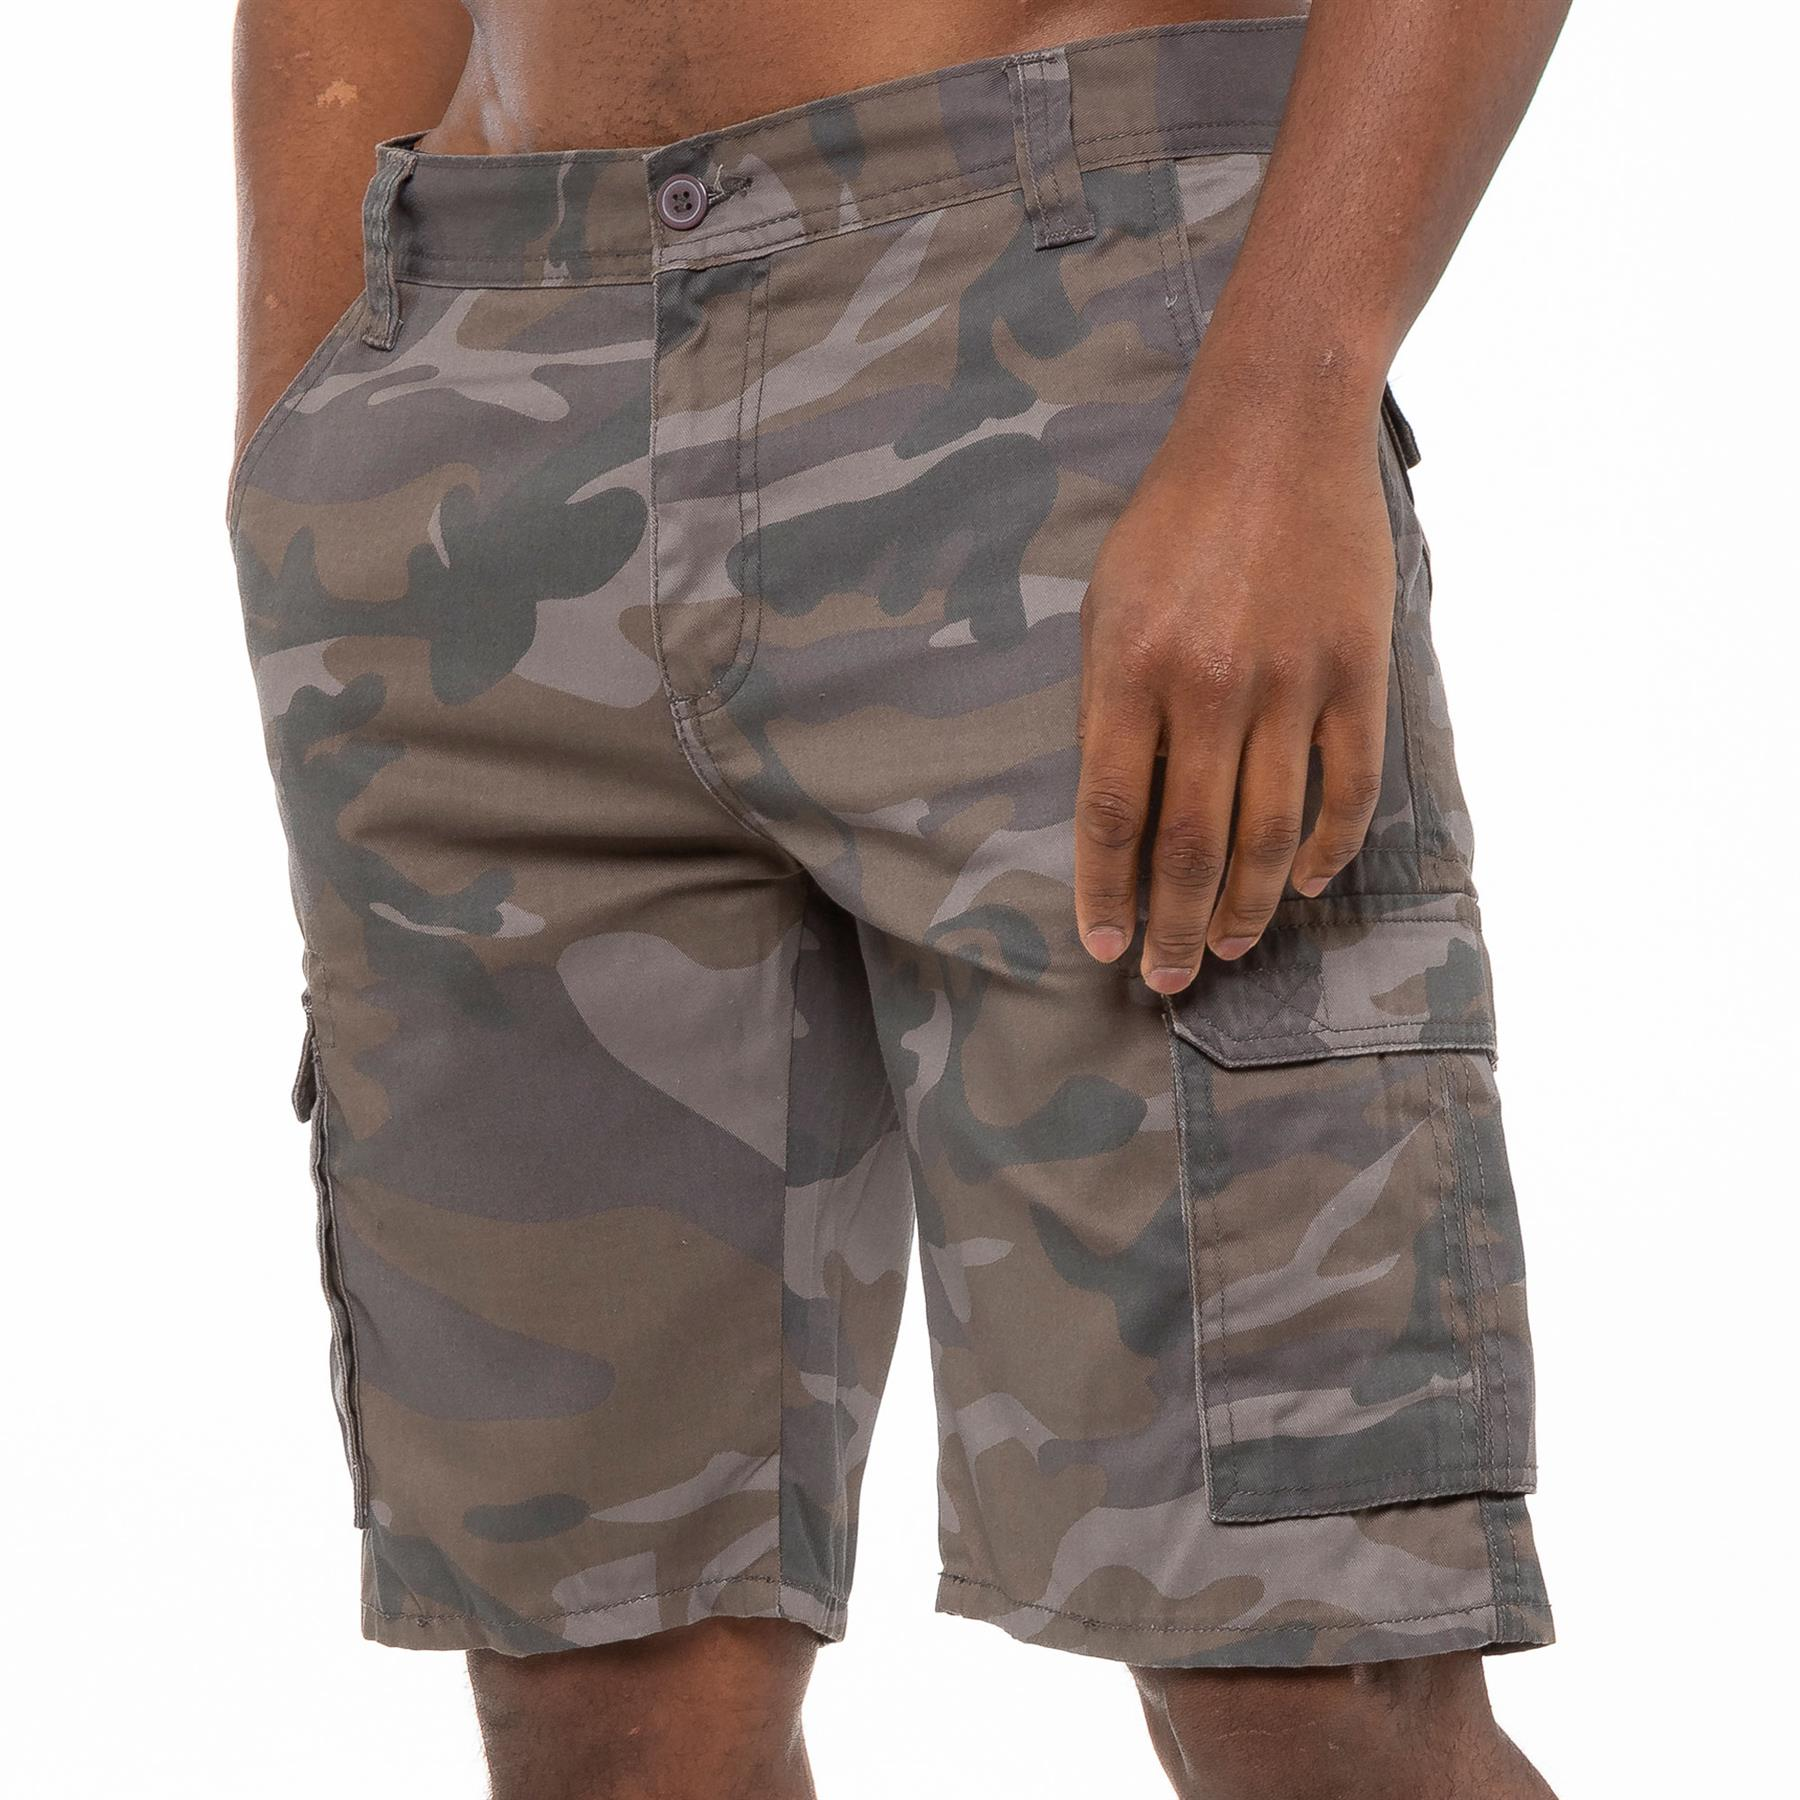 thumbnail 13 - Kruze Jeans Mens Army Combat Shorts Camouflage Cargo Casual Camo Work Half Pants